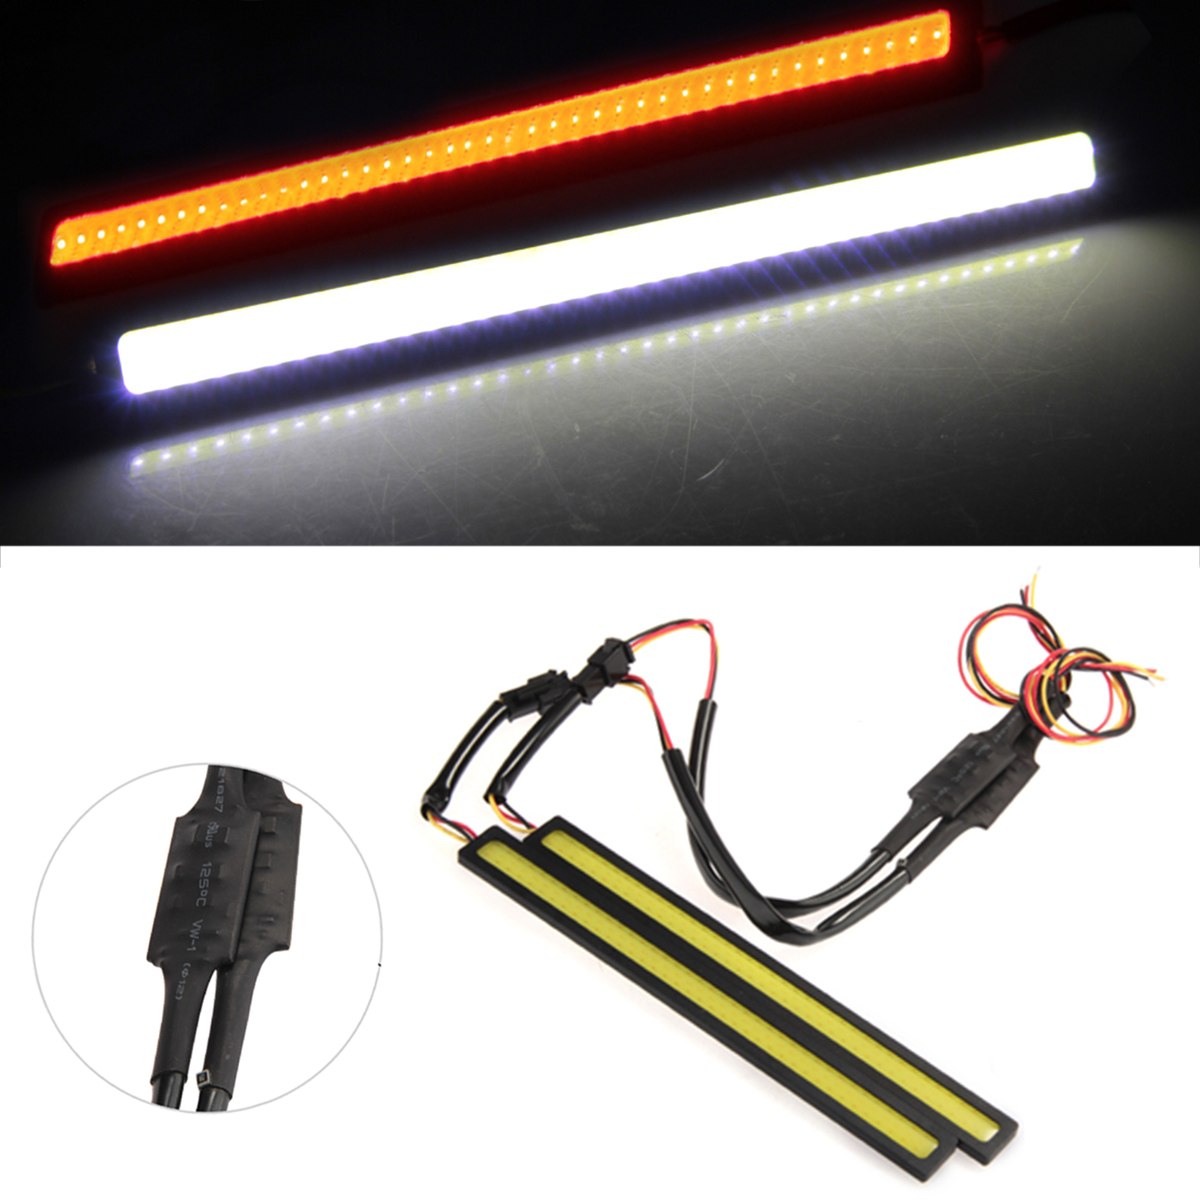 2W COB LED Daytime Running Lamp Light DRL Car Truck Driving White + Yellow Color накладной светильник 018861 arlight